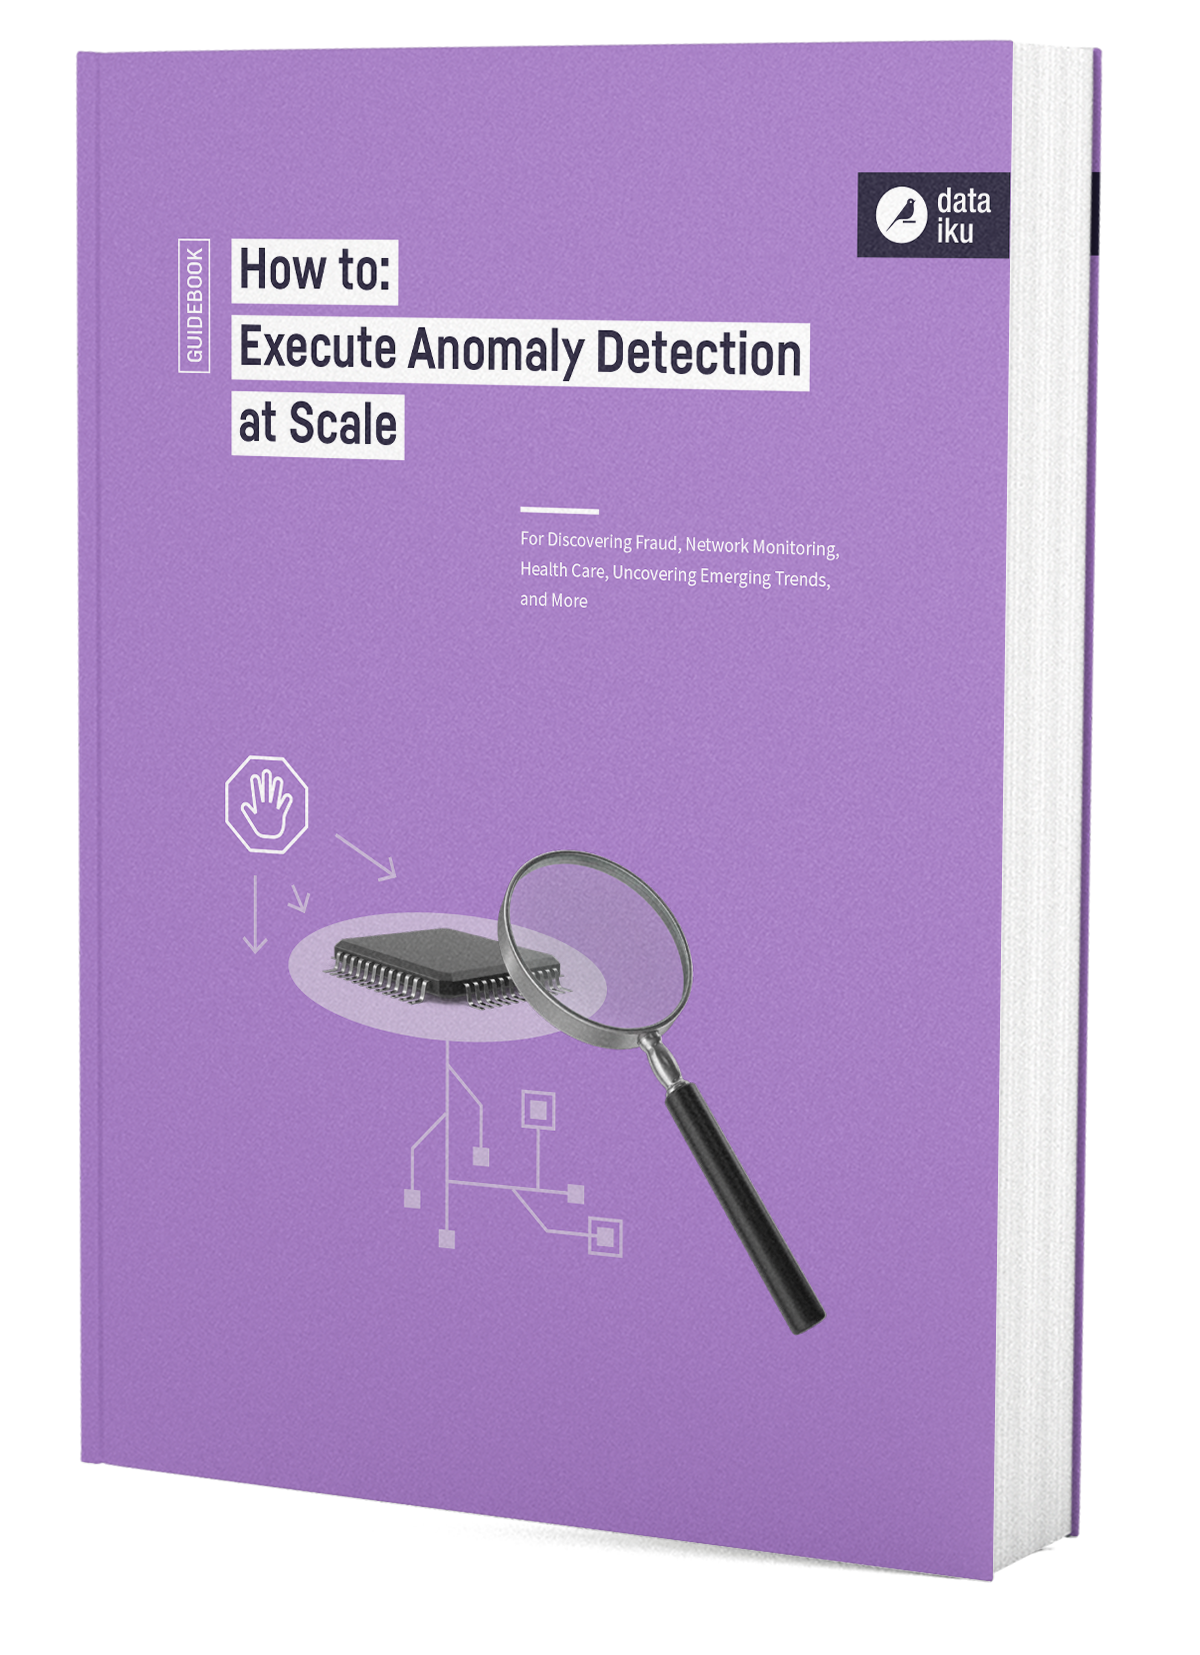 DKU-DATAIKU-EBOOK_COVER-WEB-HOW_TO_EXECUTE_ANOMALY_DETECTION_AT_SCALE-BAT_210518